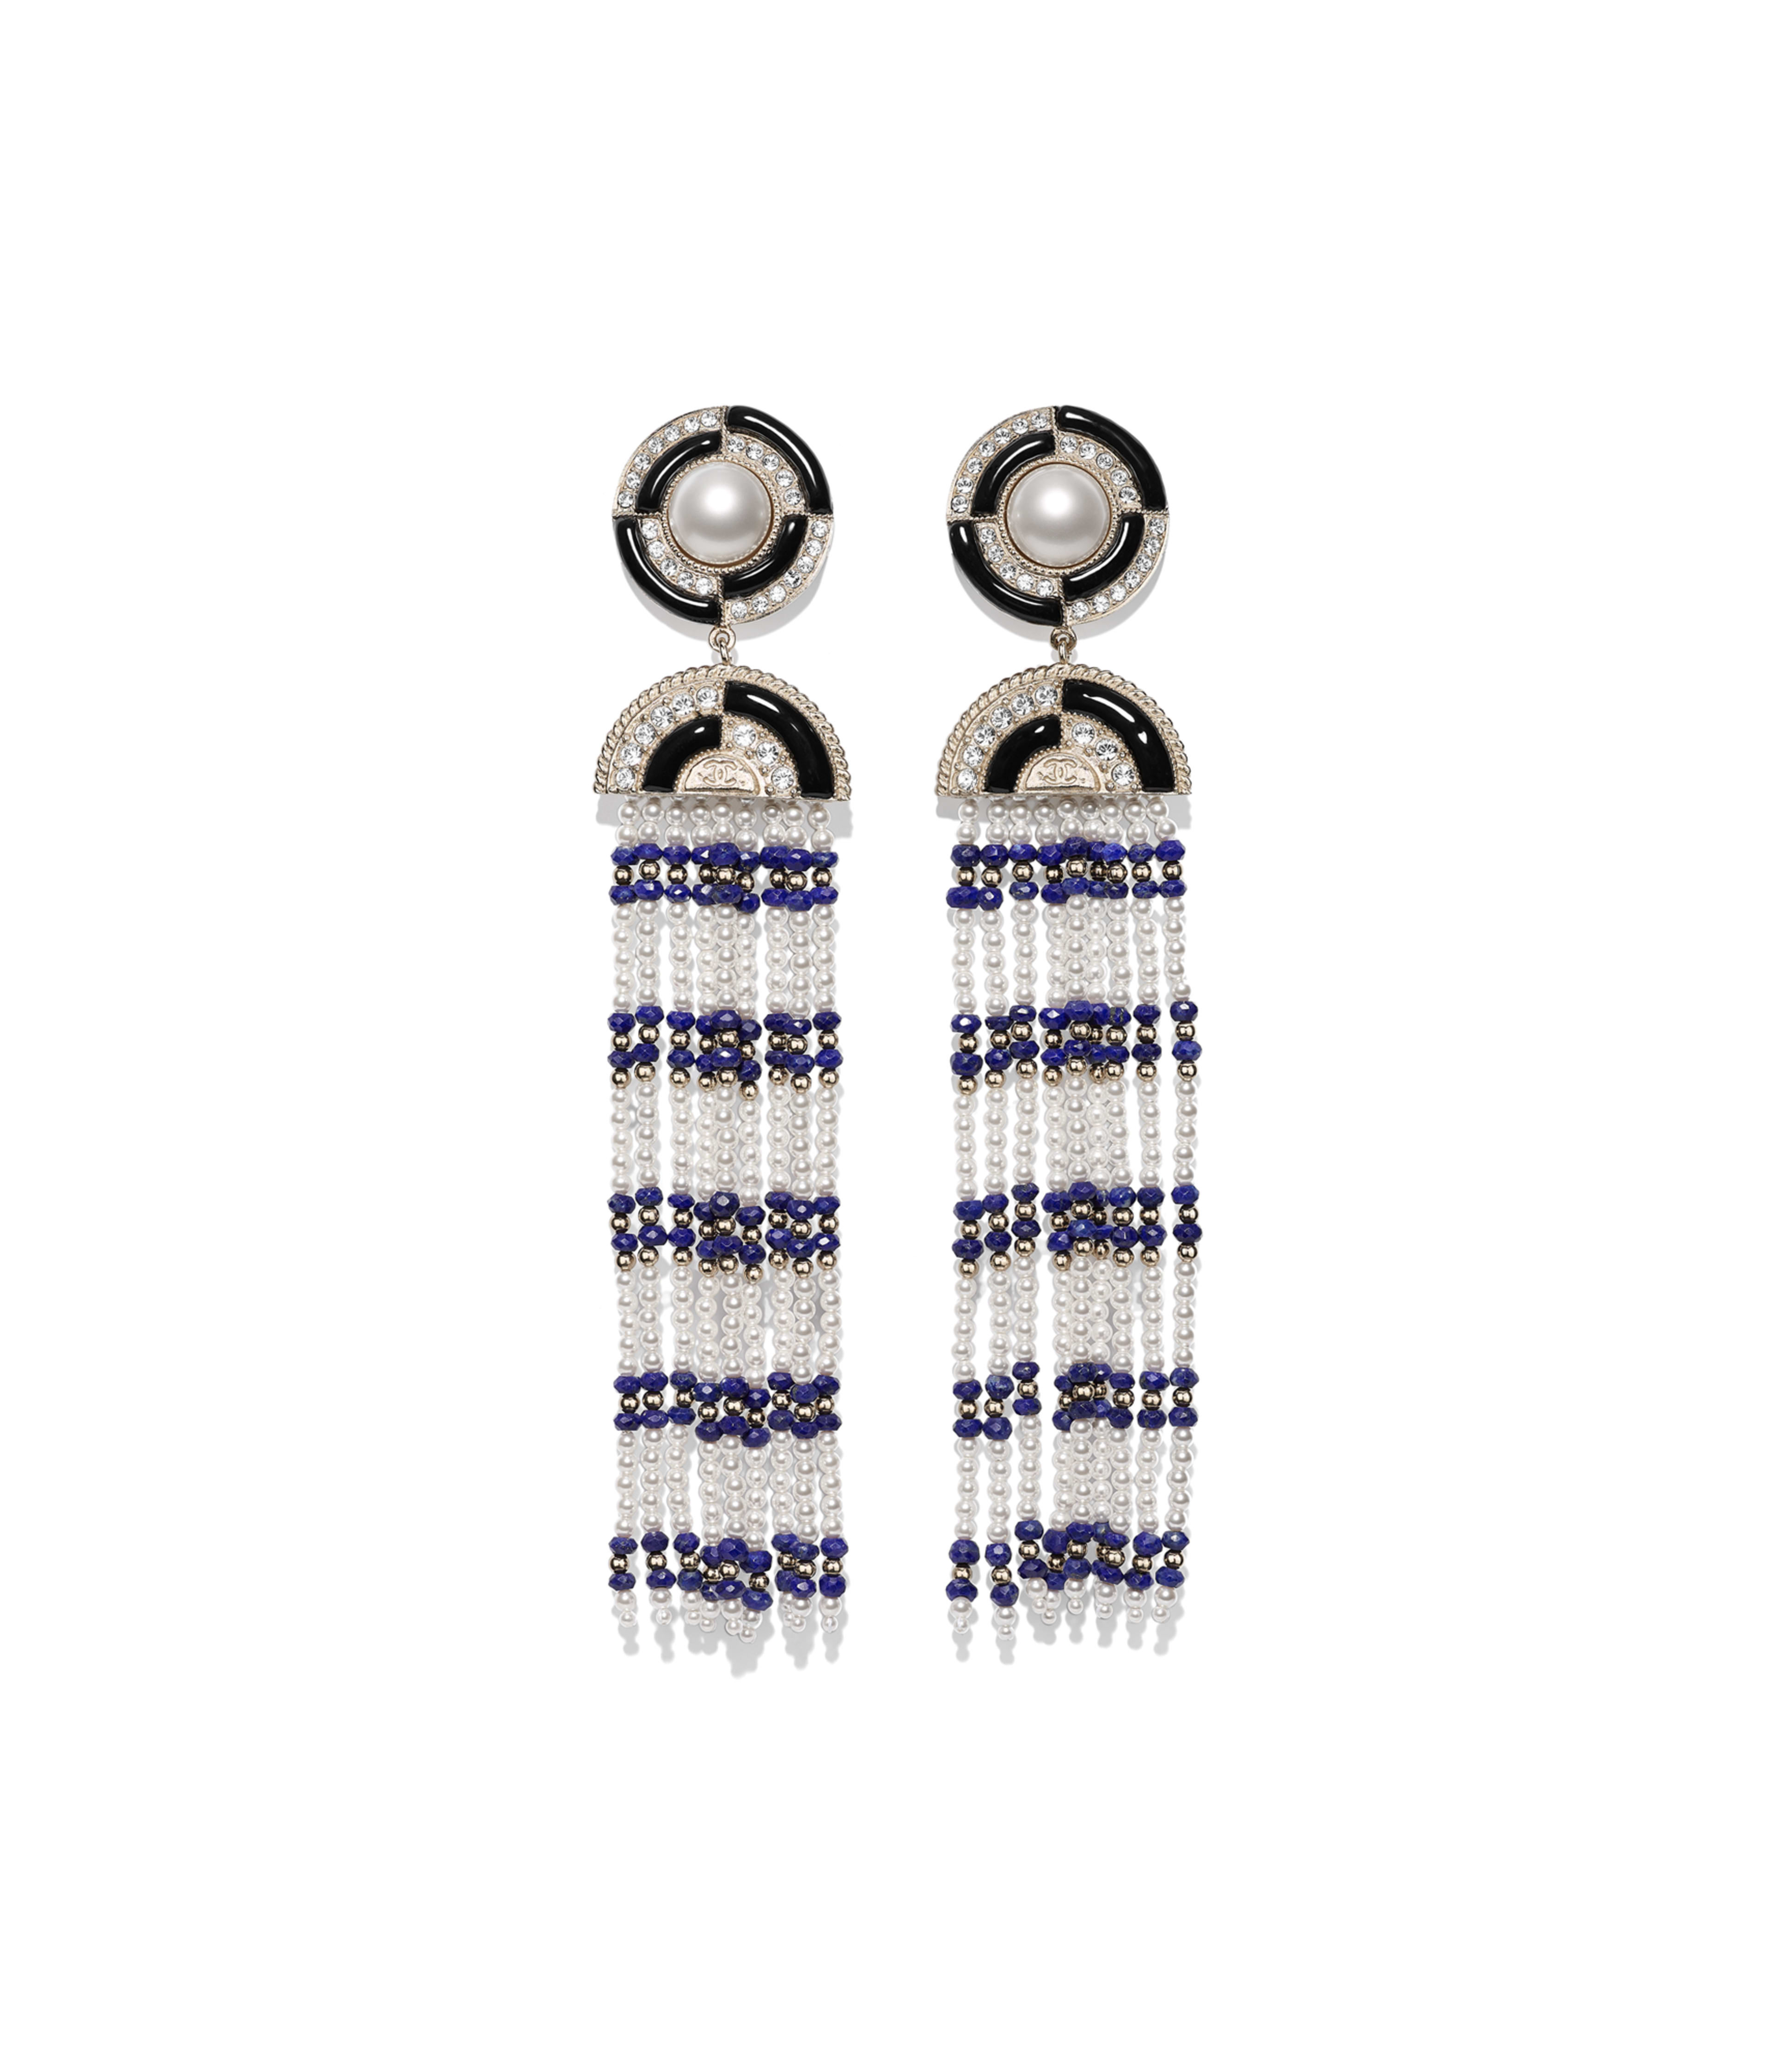 7e6e052f6 Clip-on Earrings Metal, Natural Stones, Glass Pearls, Strass & Resin, Gold,  Black, Blue, Pearly White & Crystal Ref. AB1972Y47785Z9213